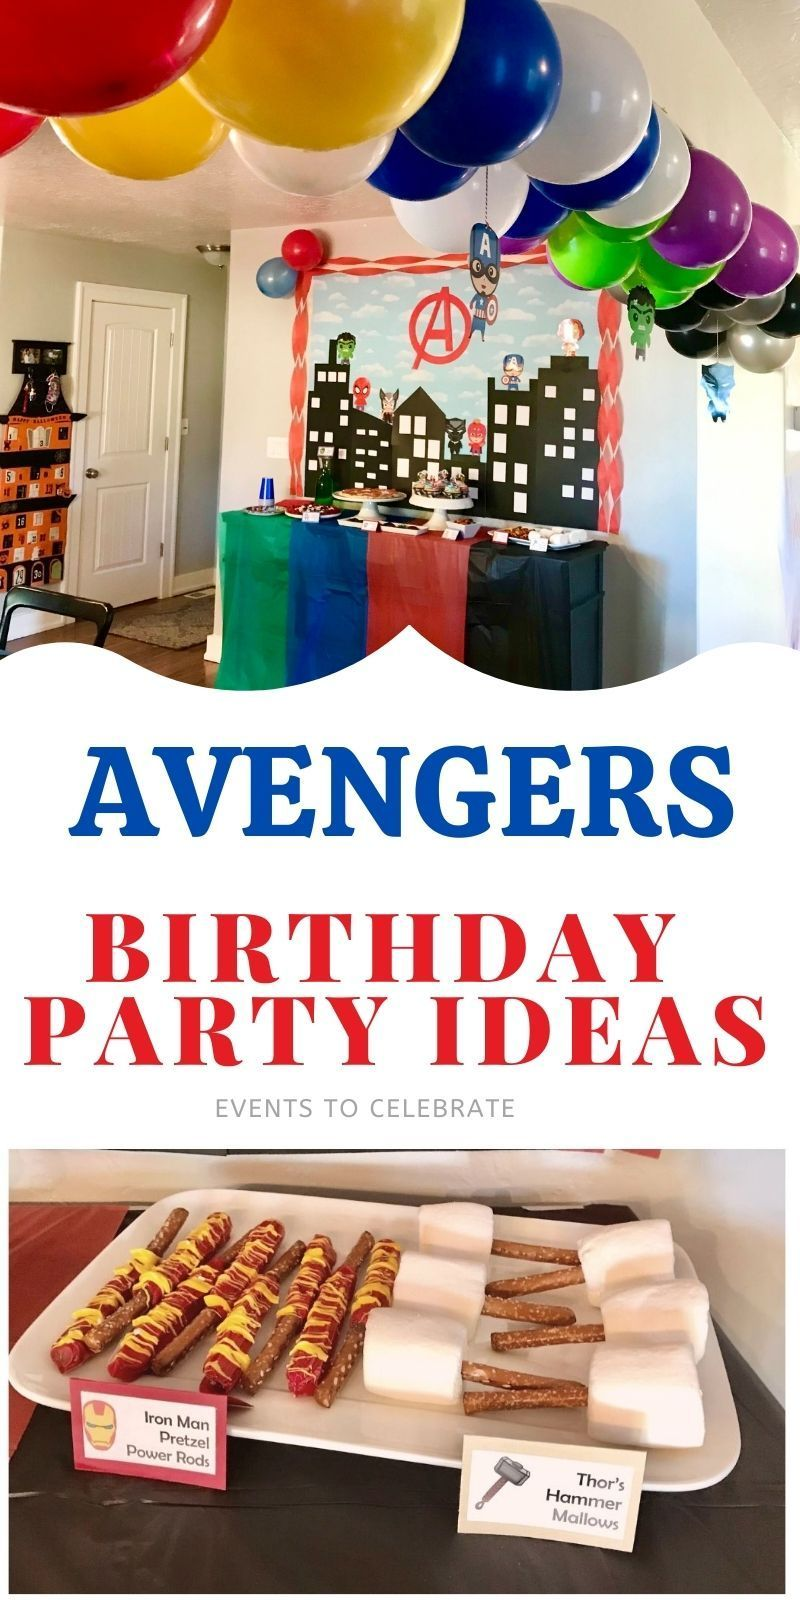 Avengers Party Birthday Party Games For Kids Kids Themed Birthday Parties Superhero Birthday Party Games